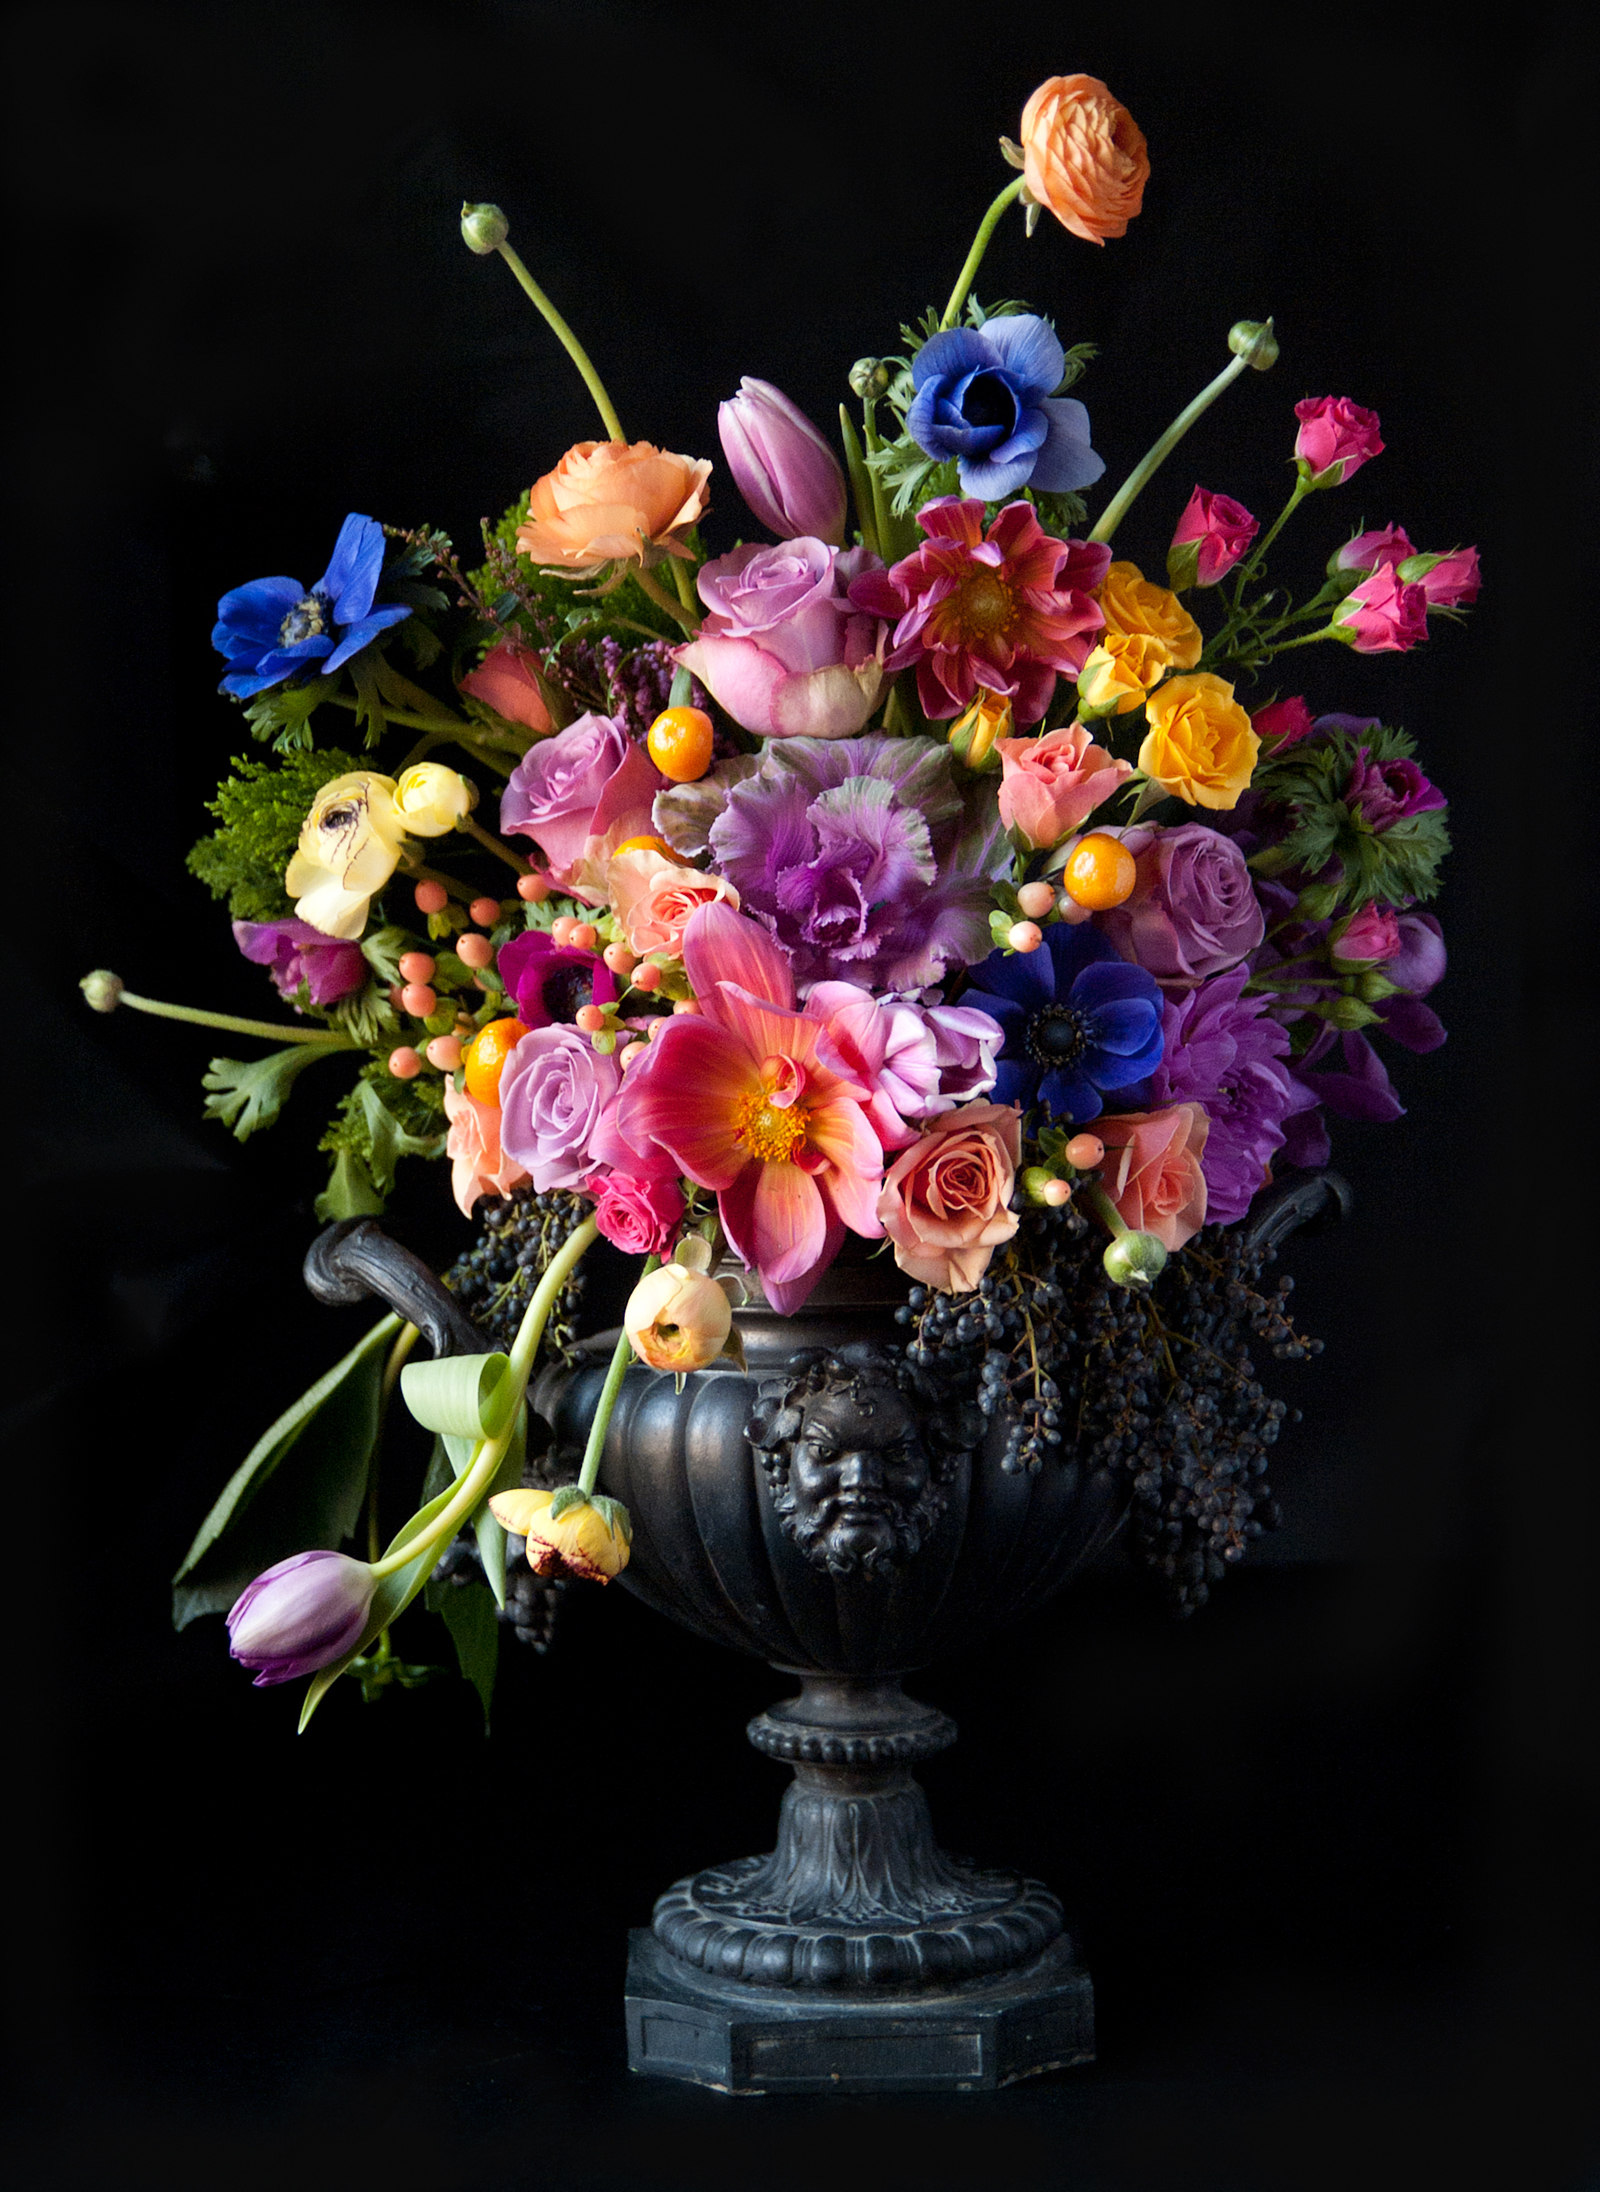 Bouquets_Black_background_Vase_520479_16